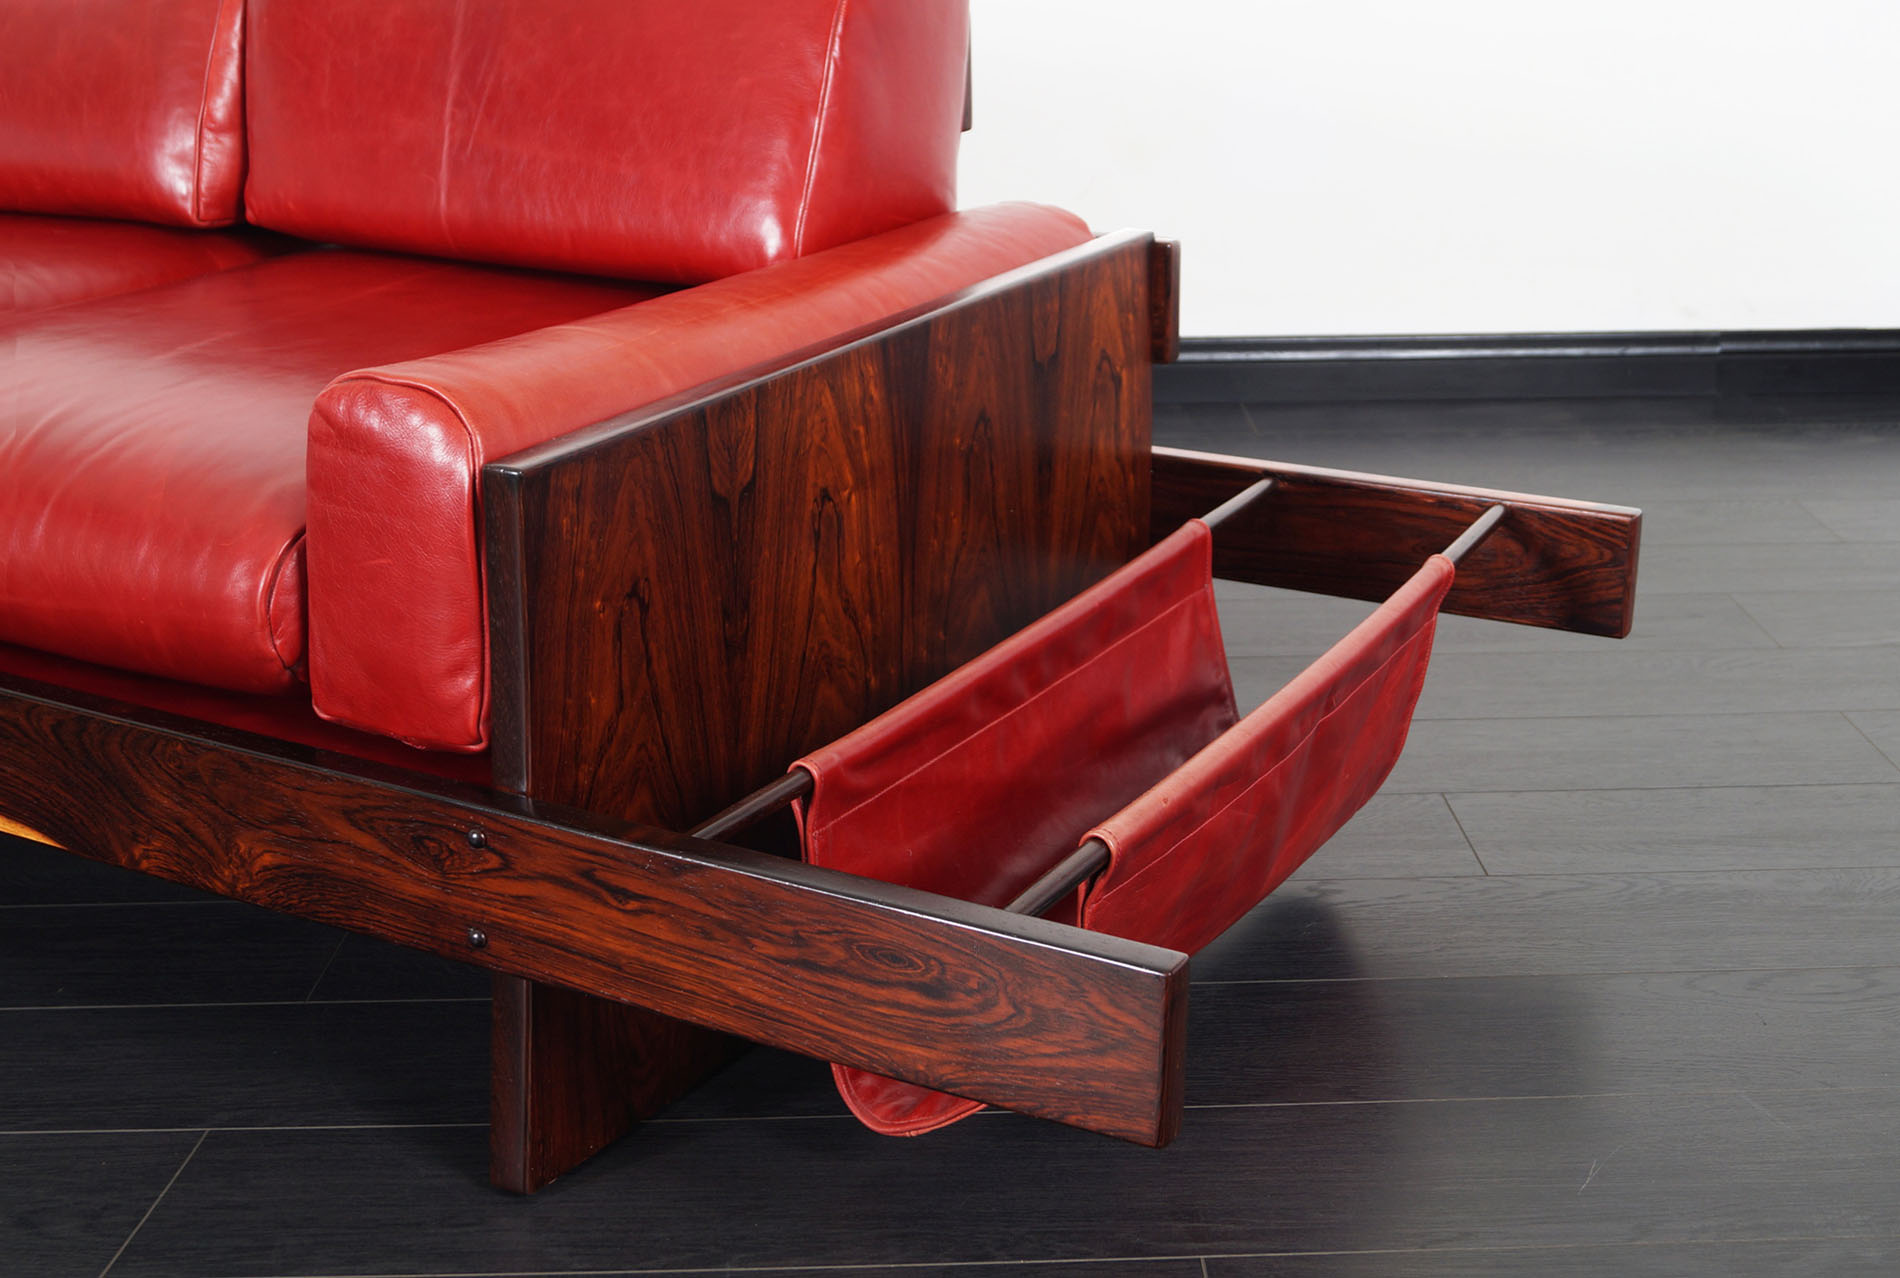 Brazilian Rosewood & Leather Sofa Attributed to Celina Moveis